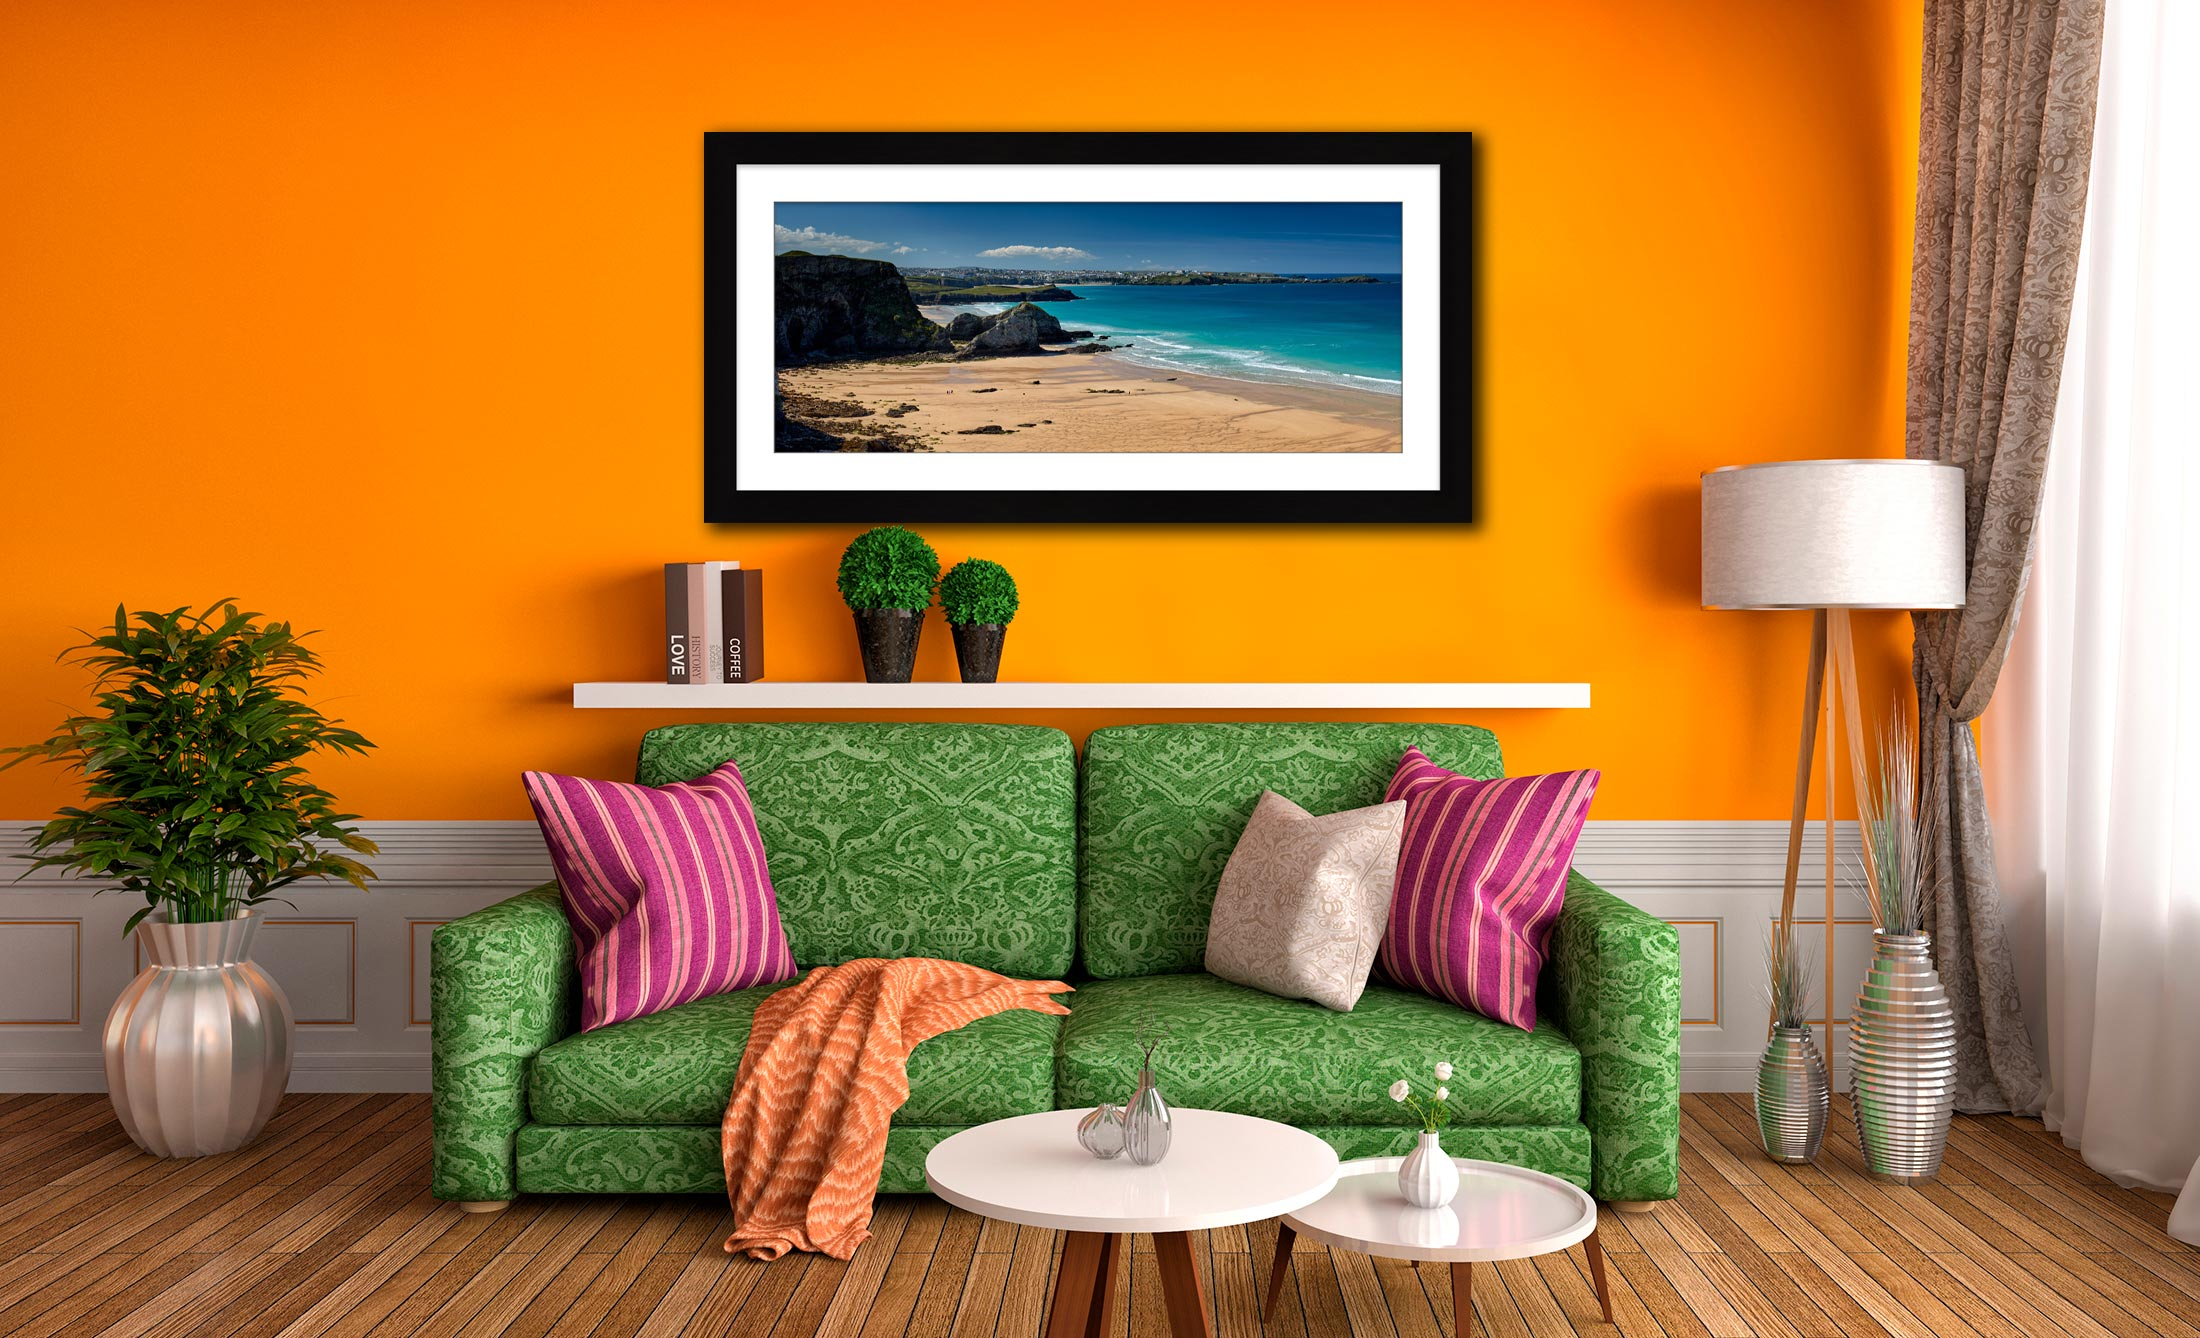 Porth Beach and Newquay - Framed Print with Mount on Wall